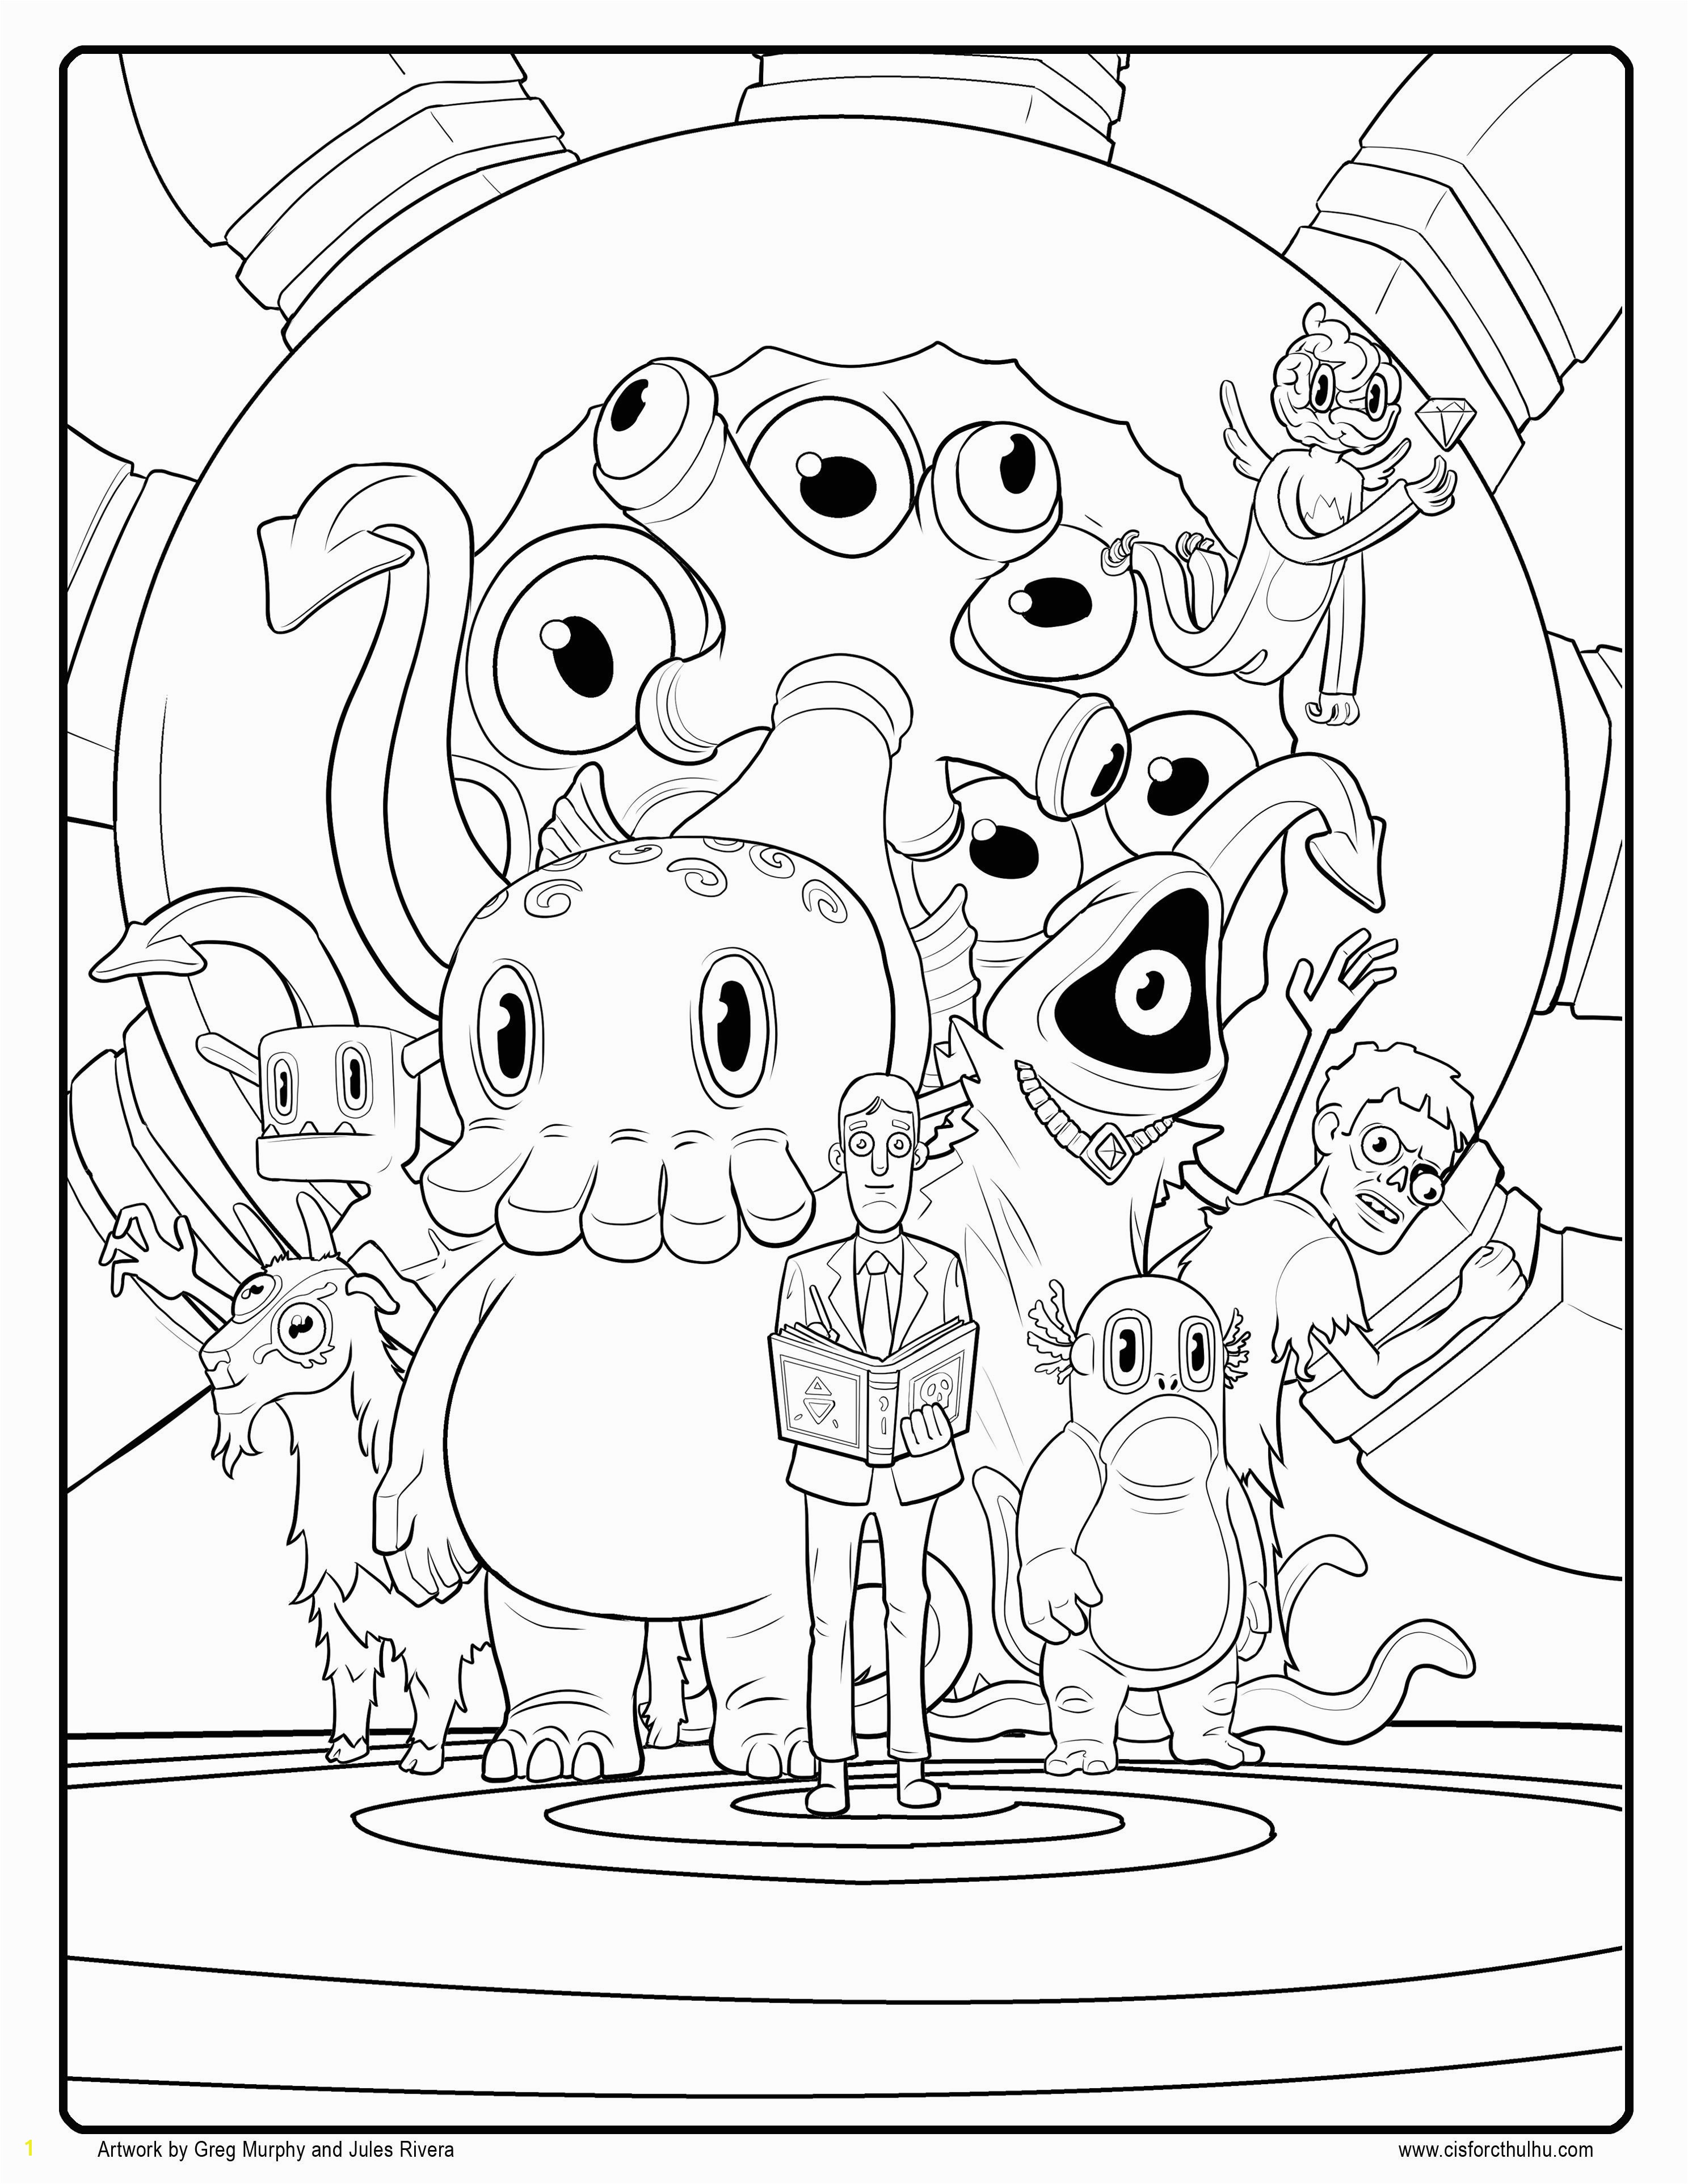 Awesome Coloring Pages New Marvel Coloring Pages Awesome I Pinimg originals 0d 61 31 0d Df1b08